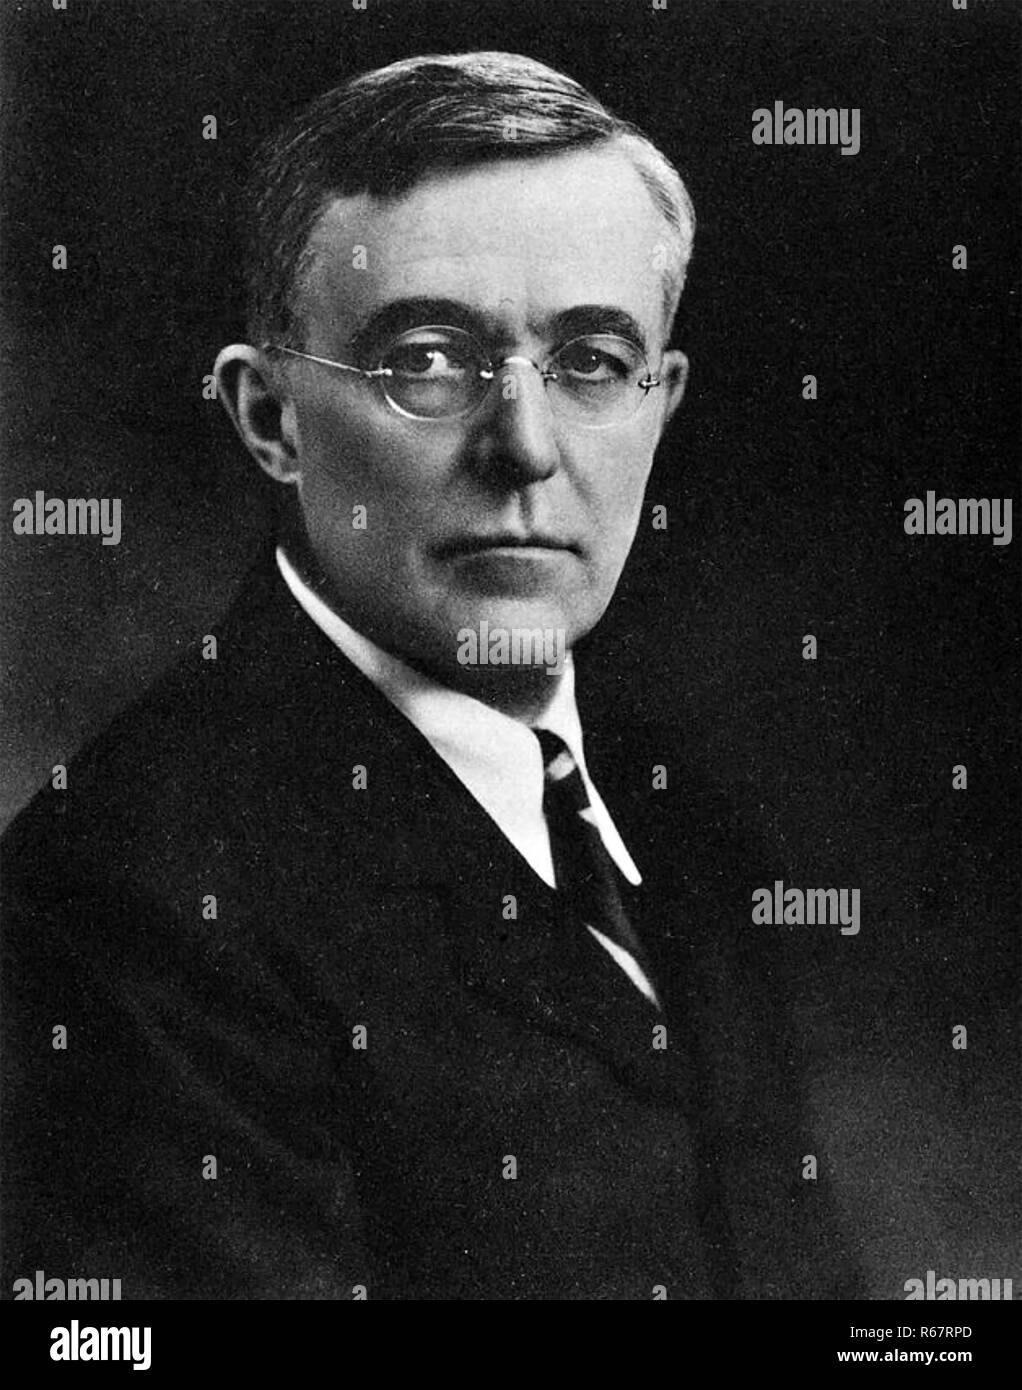 IRVING LANGMUIR (1881-1957) American chemist and physicist - Stock Image